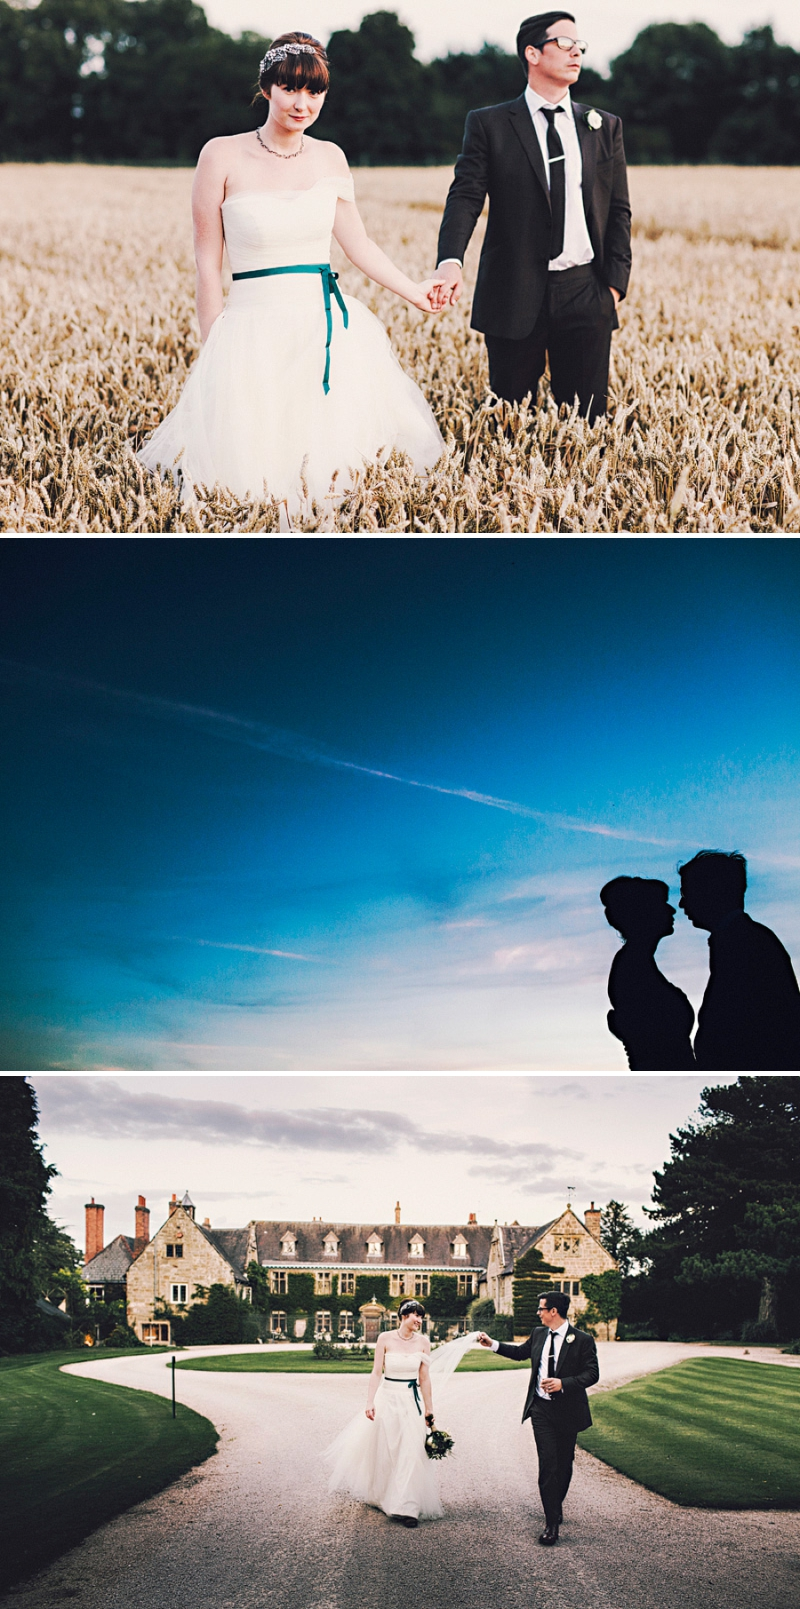 An alternative wedding with bespoke wedding dress and home made blue bridesmaids gowns. outdoor venue with rustic garden games and reception teepee. Photography by Steve Gerrard_0013